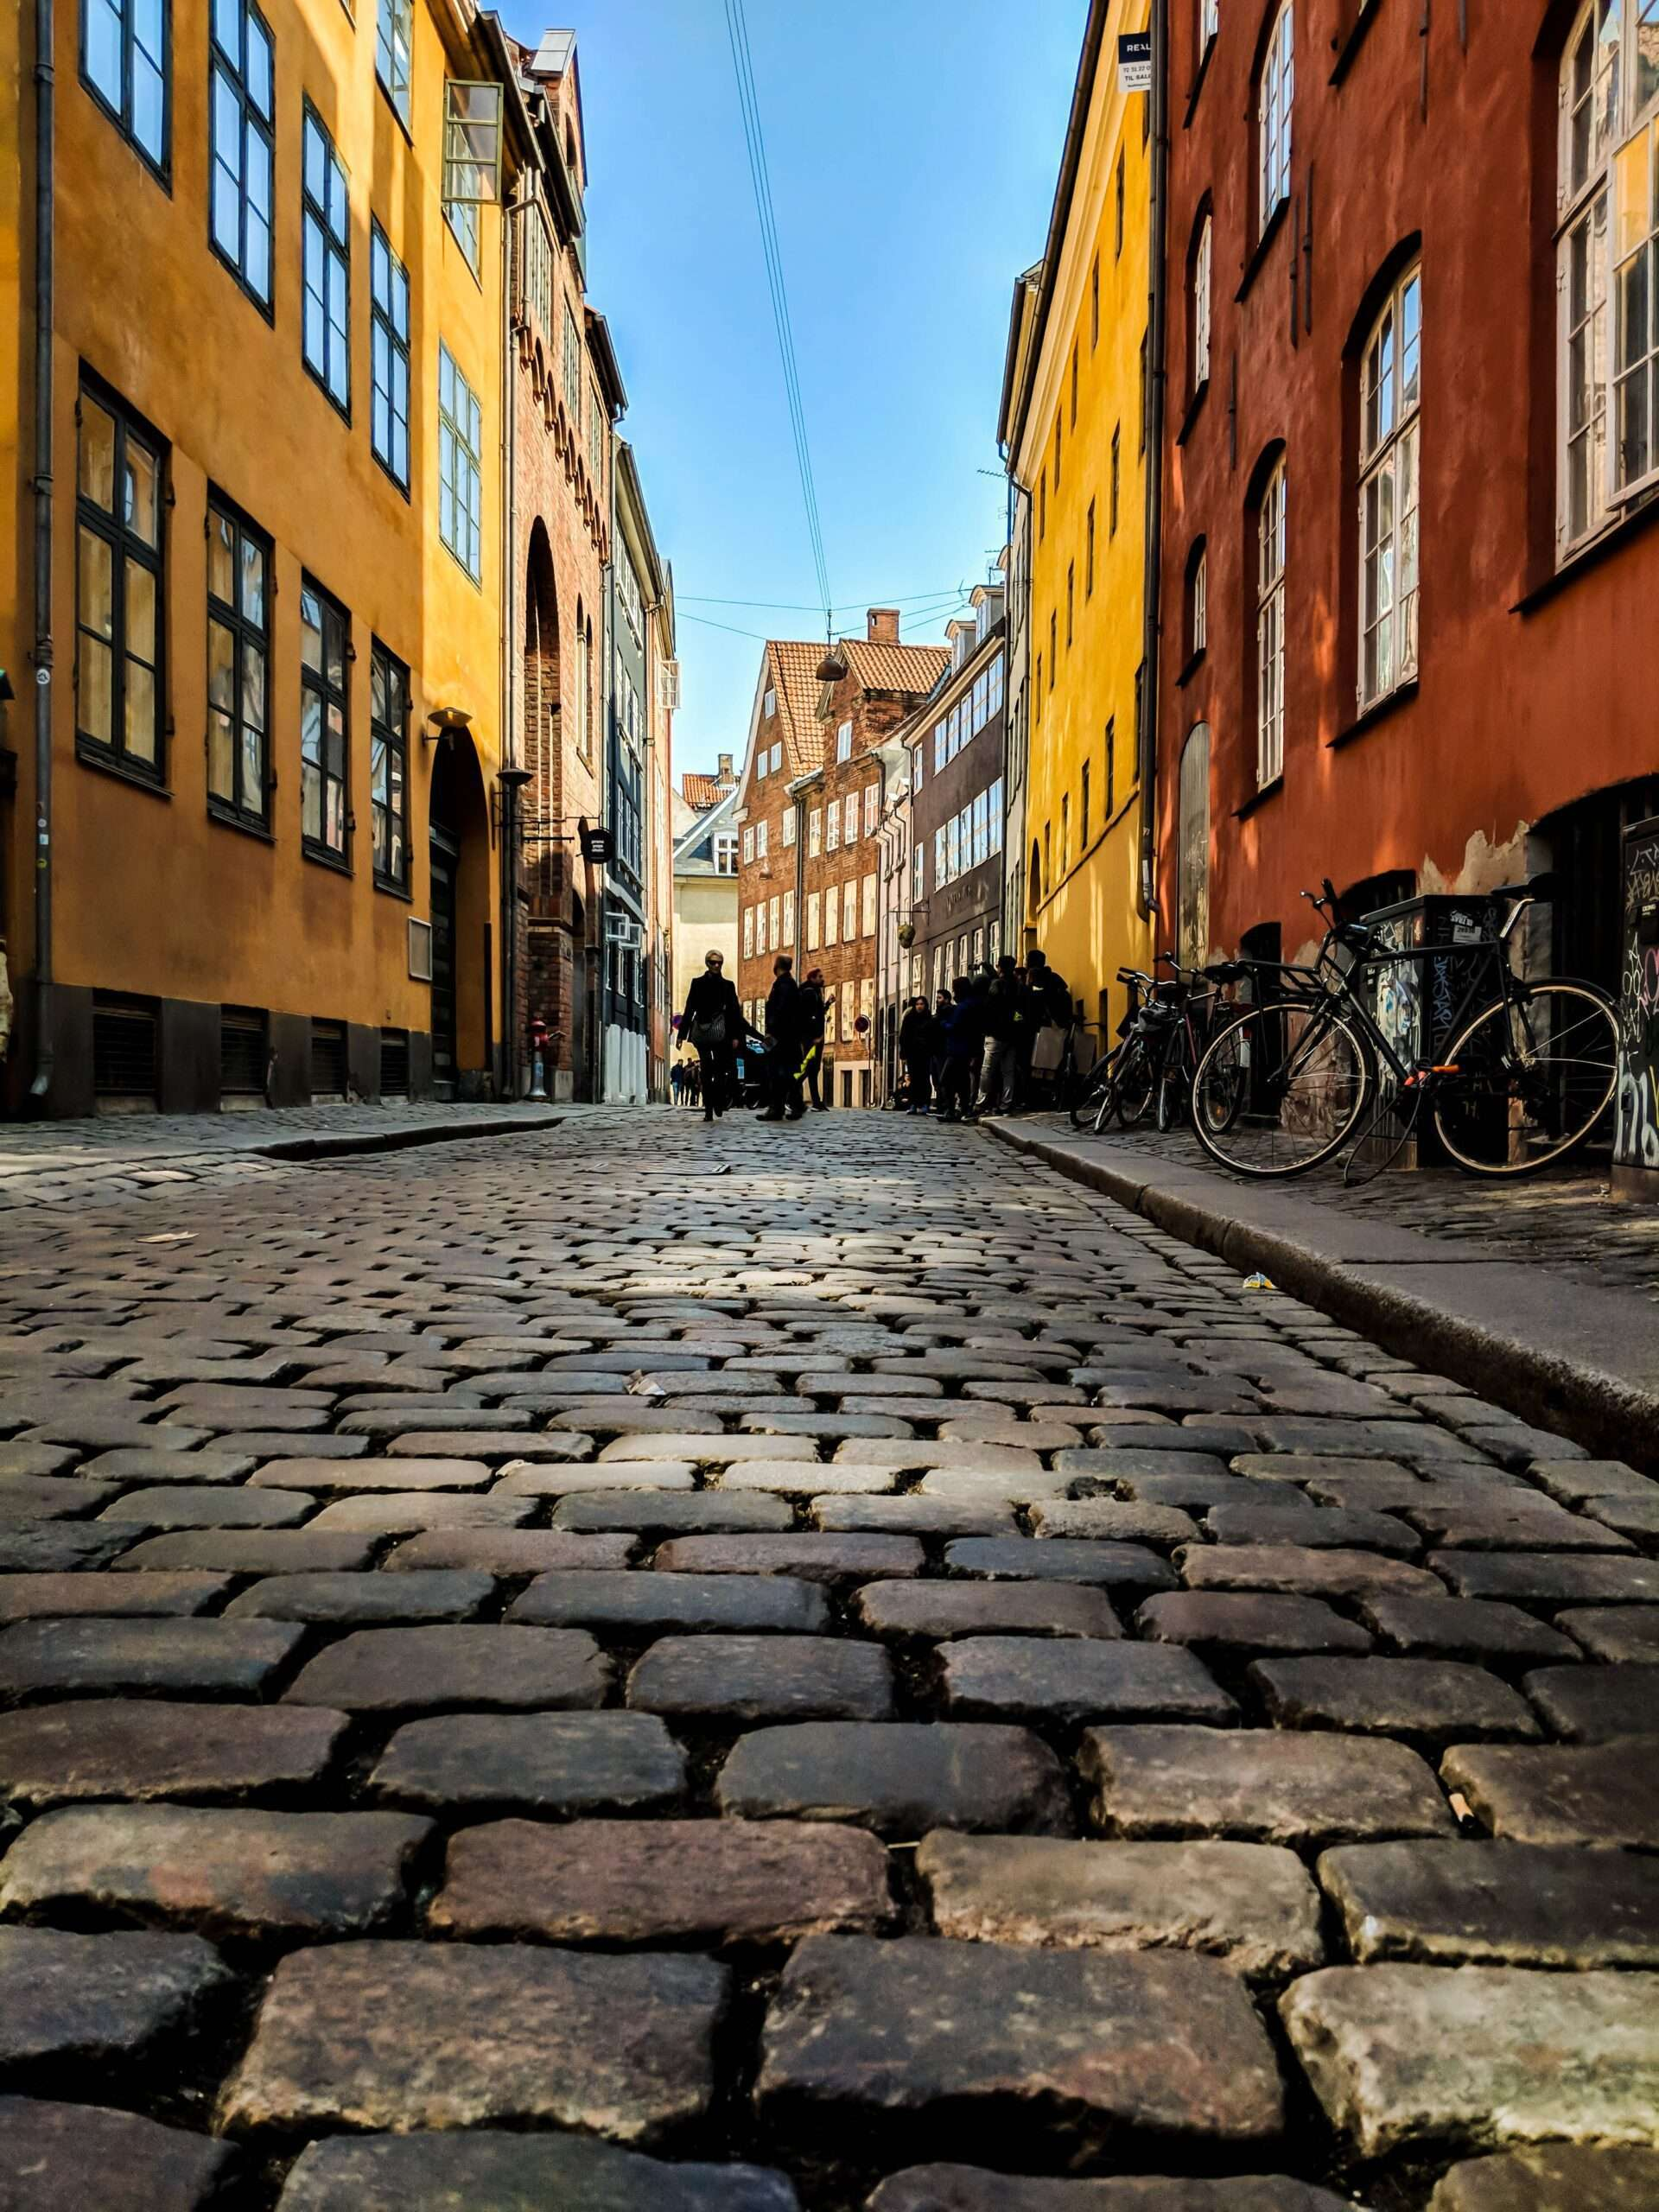 cobbled streets lined with brightly coloured houses in Copenhagen